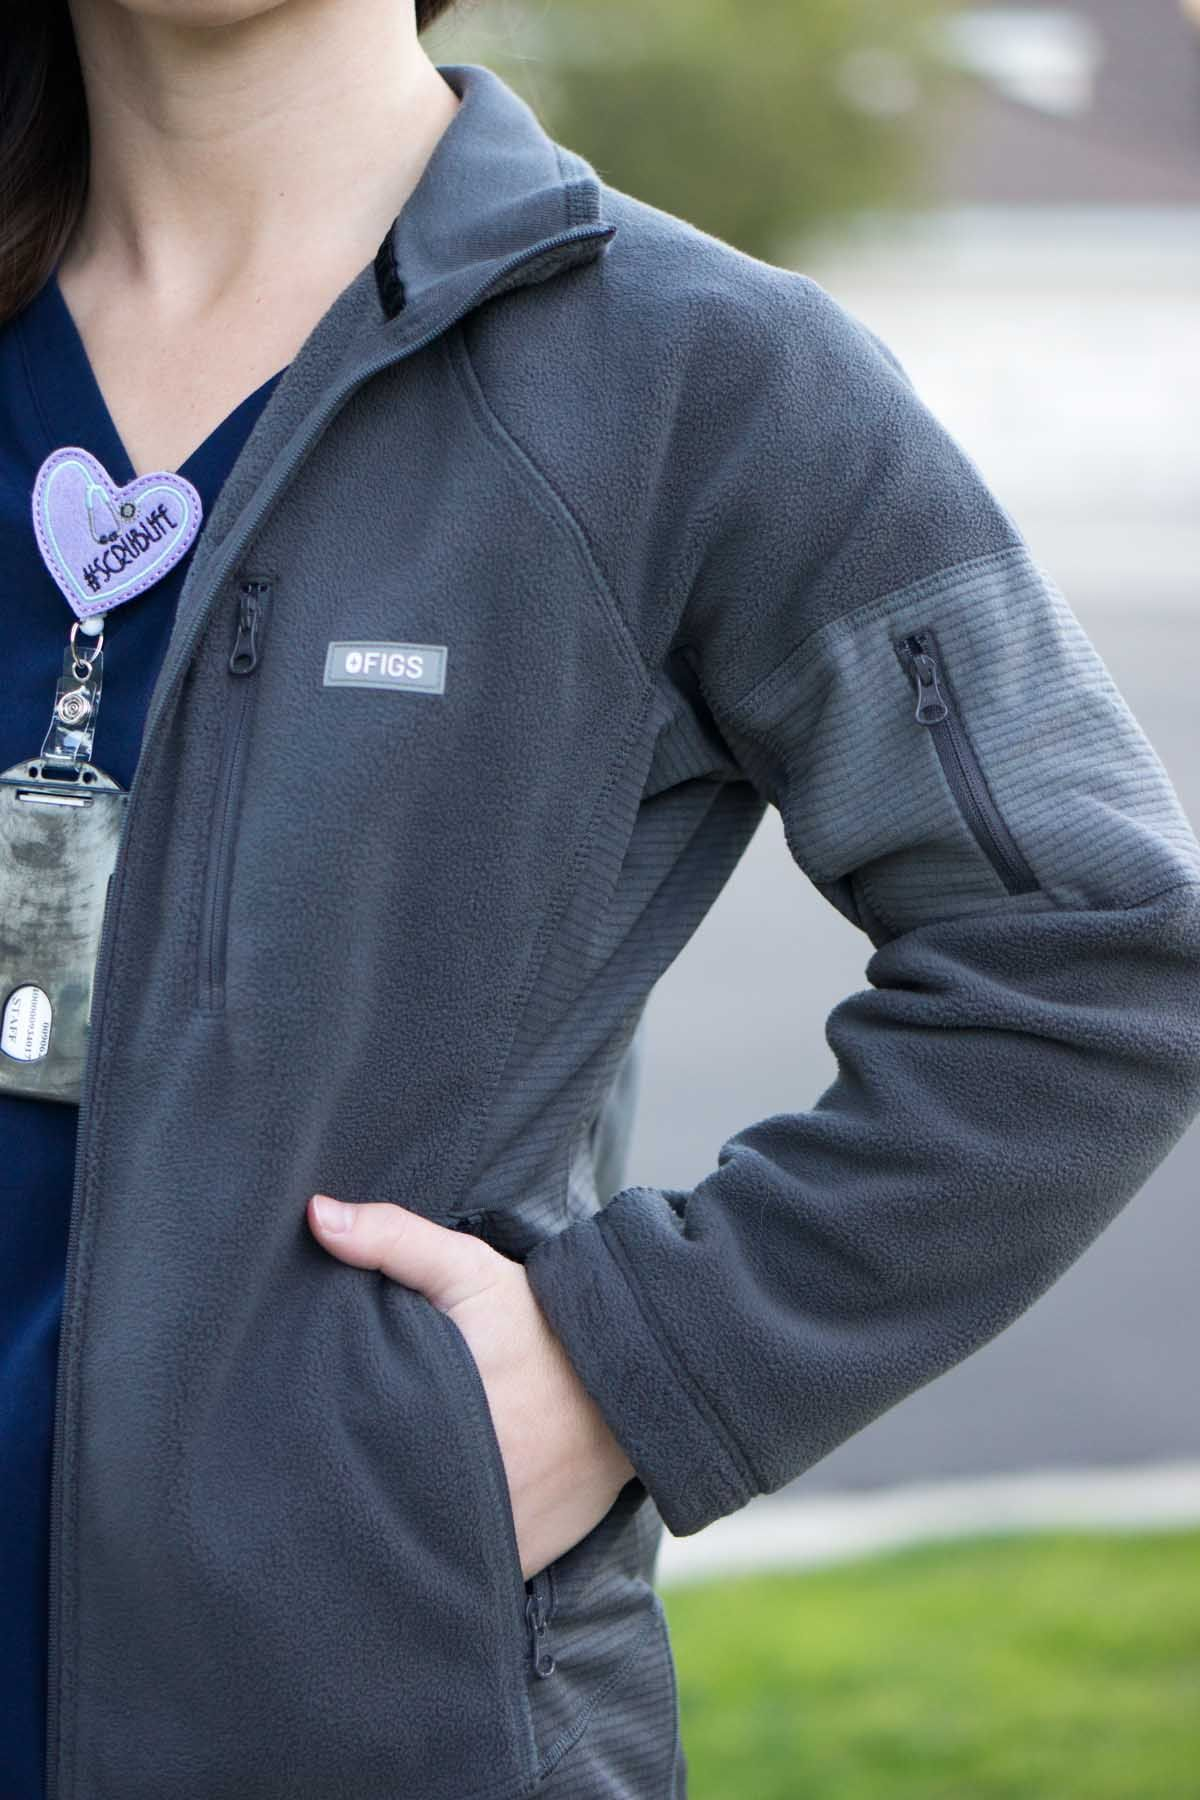 FIGS Fleece Jacket, Vest & Tee Review | Scrub life, Phlebotomy and ...